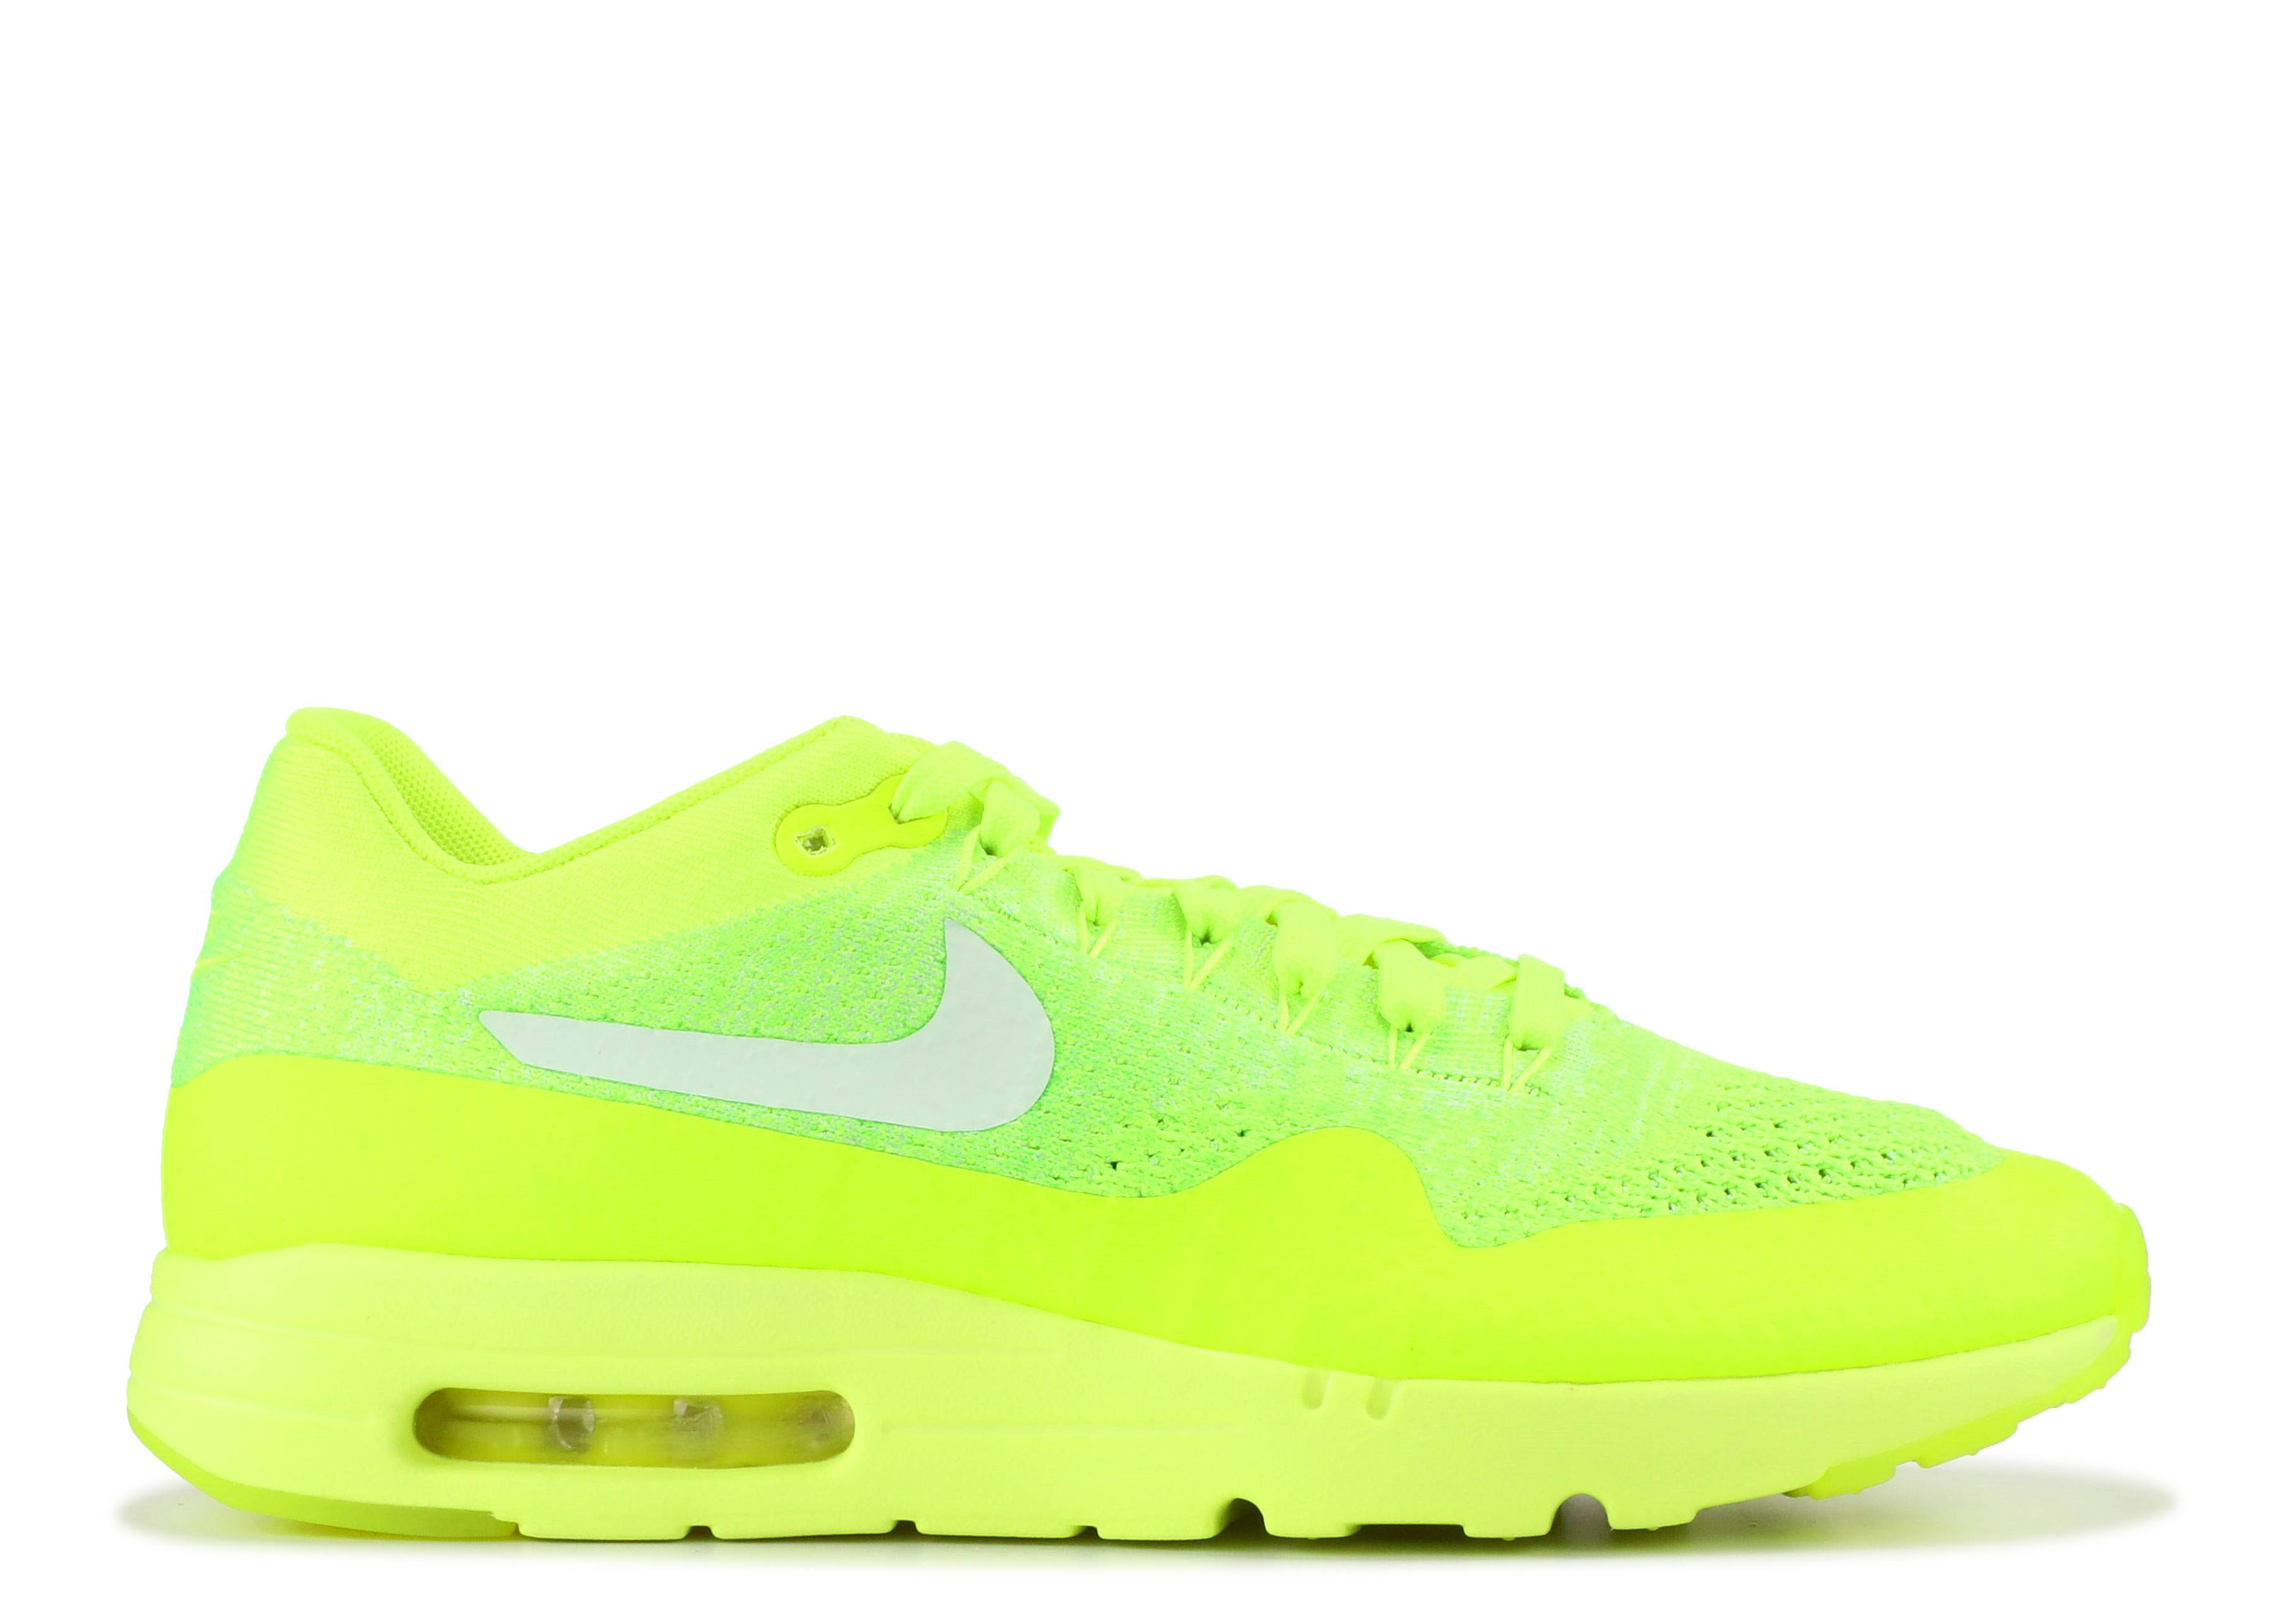 NIKE AIR MAX 1 Ultra Flyknit volt Electric green 843384 701